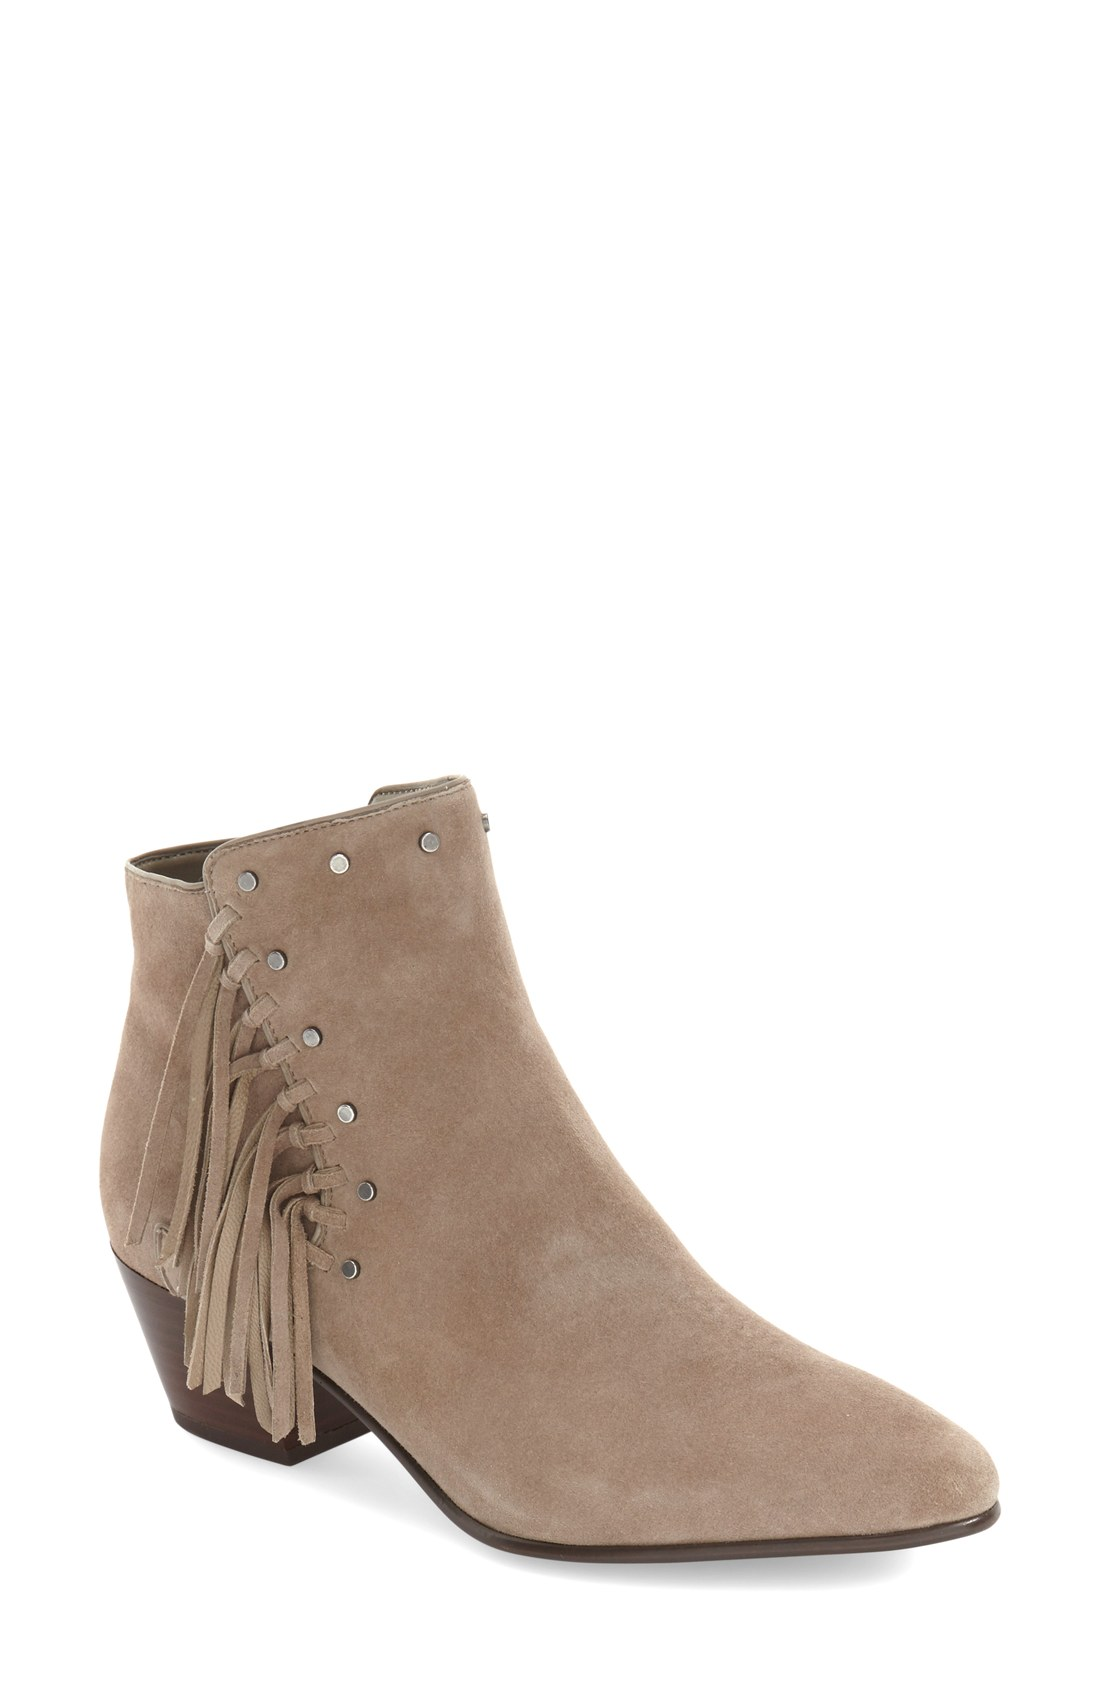 Over The Knee Fringe Boots 5GcjKTXx